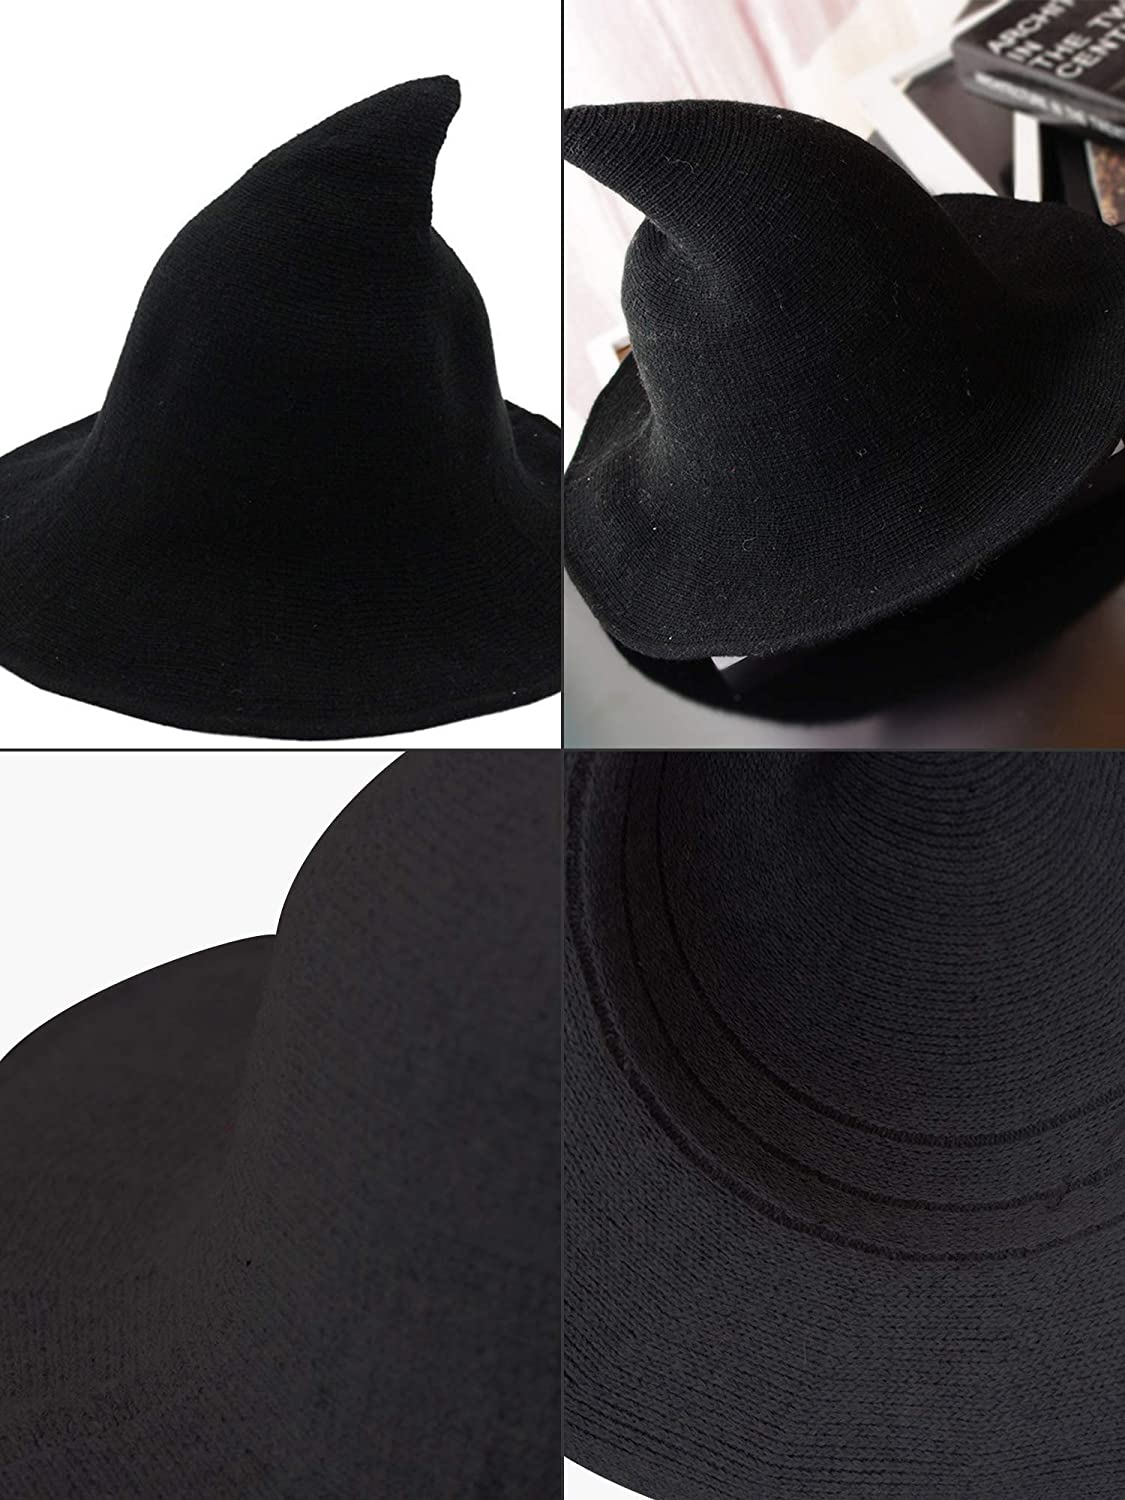 Trounistro 2 Pack Halloween Witch Hat Warm Wool Hats for Women Halloween Party Decor